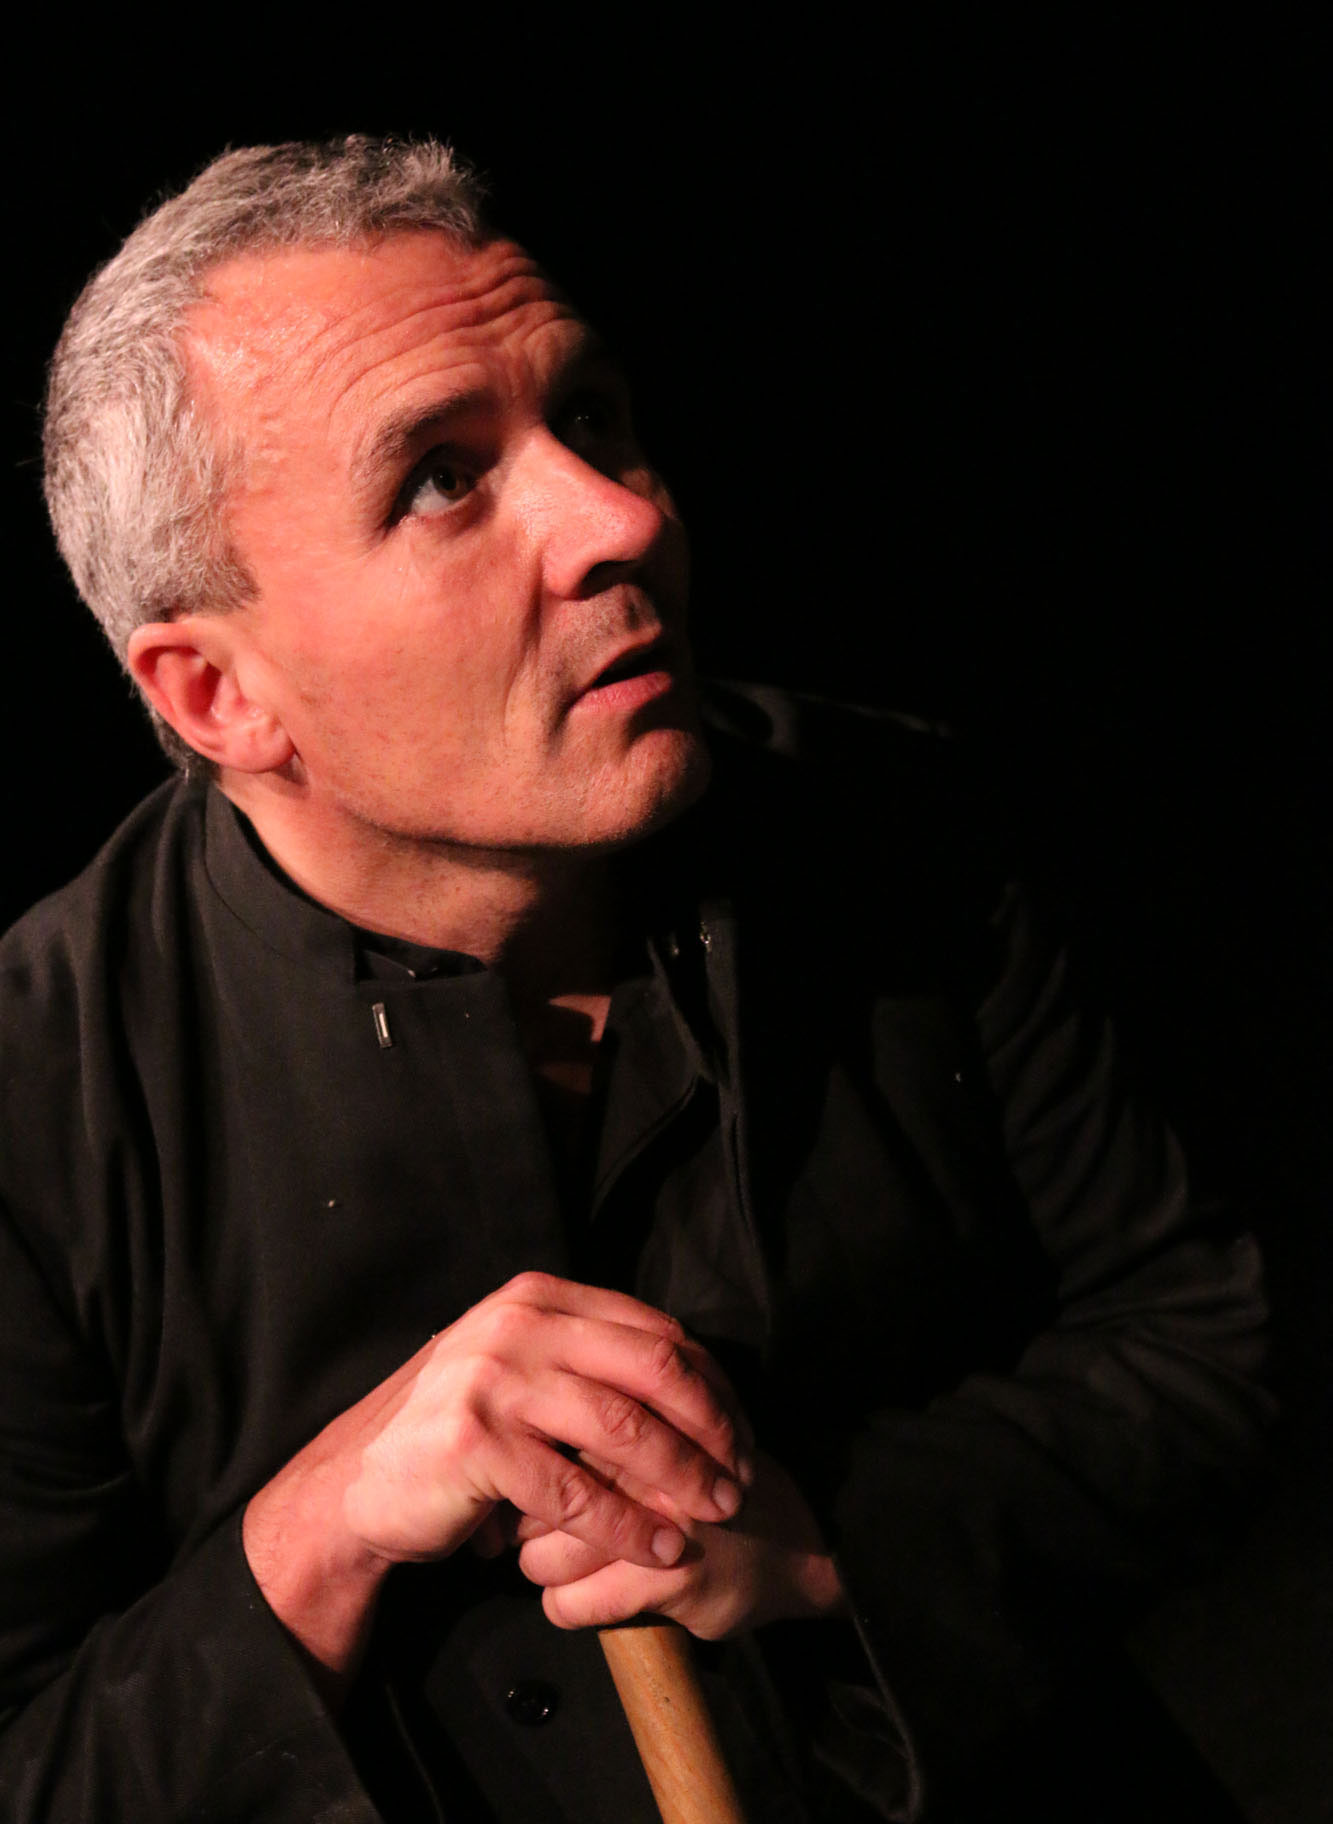 Father Joseph McGrath gets in character as a priest in The Gaiety School of Acting's Advanced Performance Year Showcase. June 2016